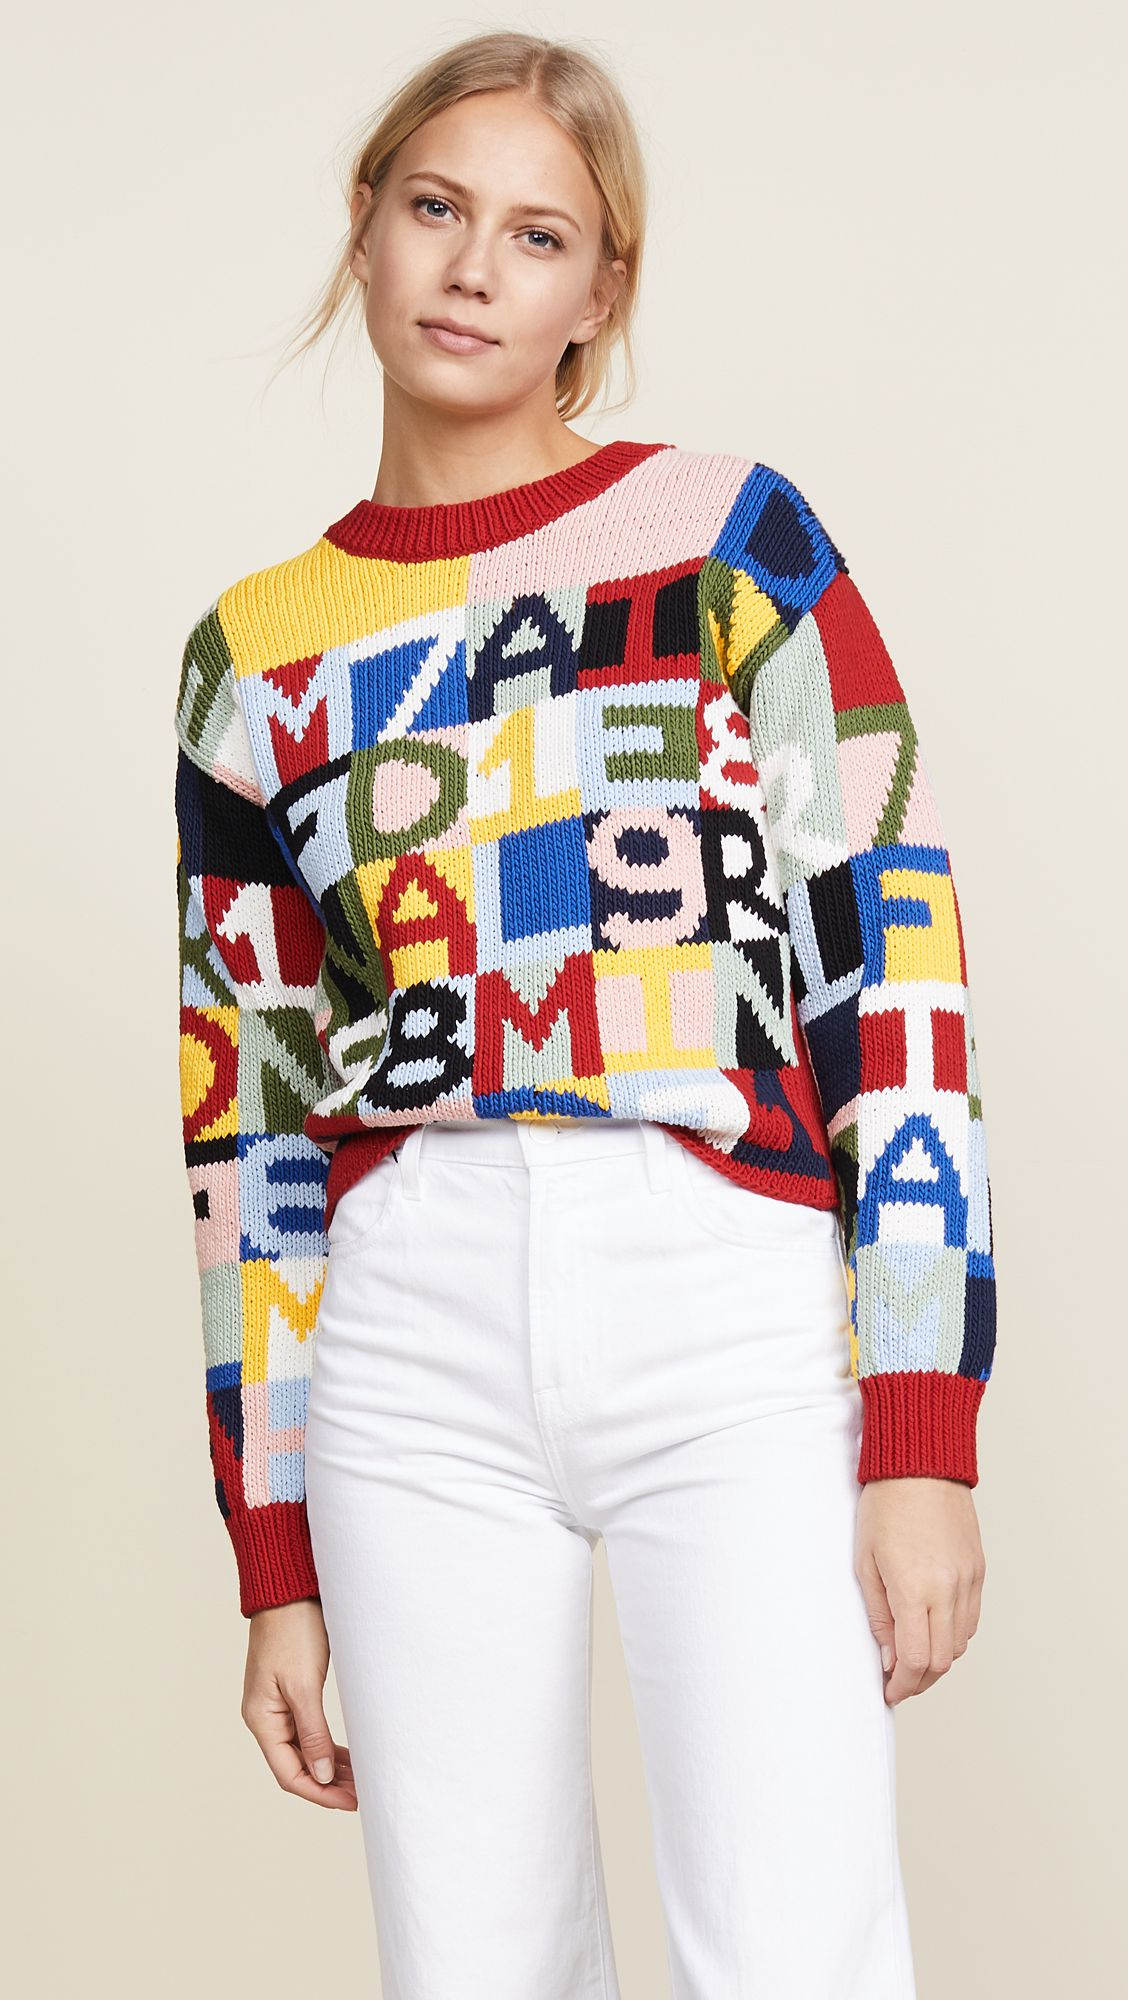 Frame Letter Sweater Sweaters, Sweaters online, Framed